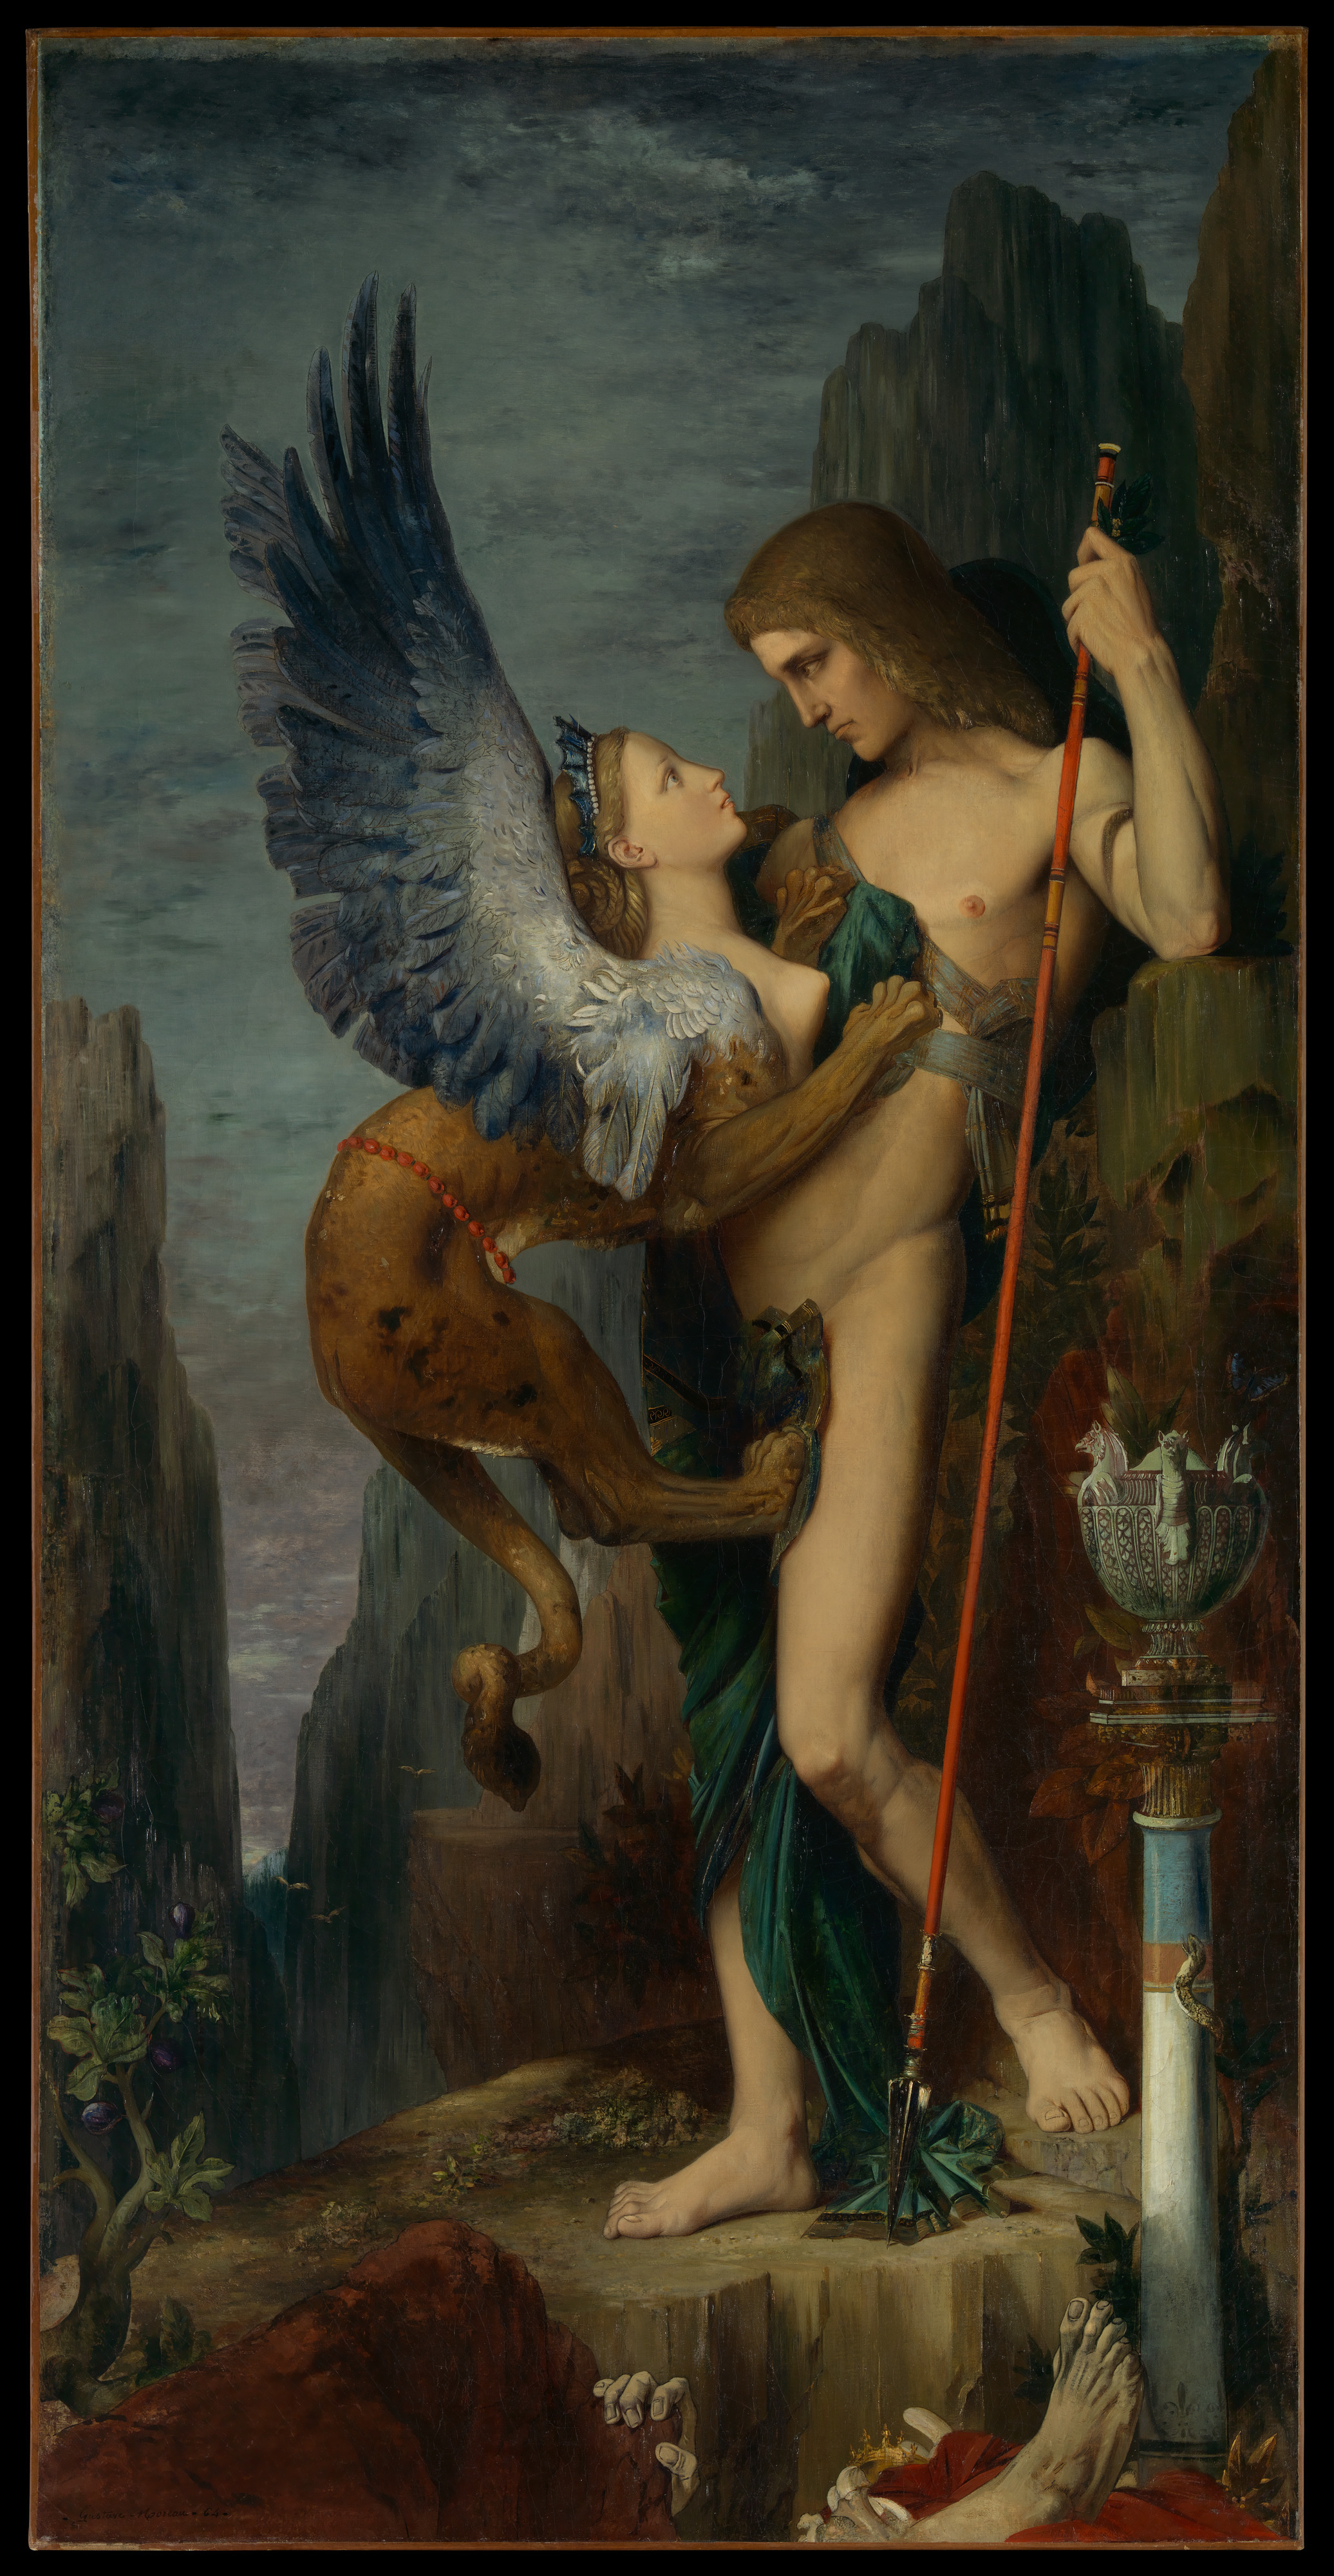 Gustave Moreau, Oedipus and the Sphinx, 1864.